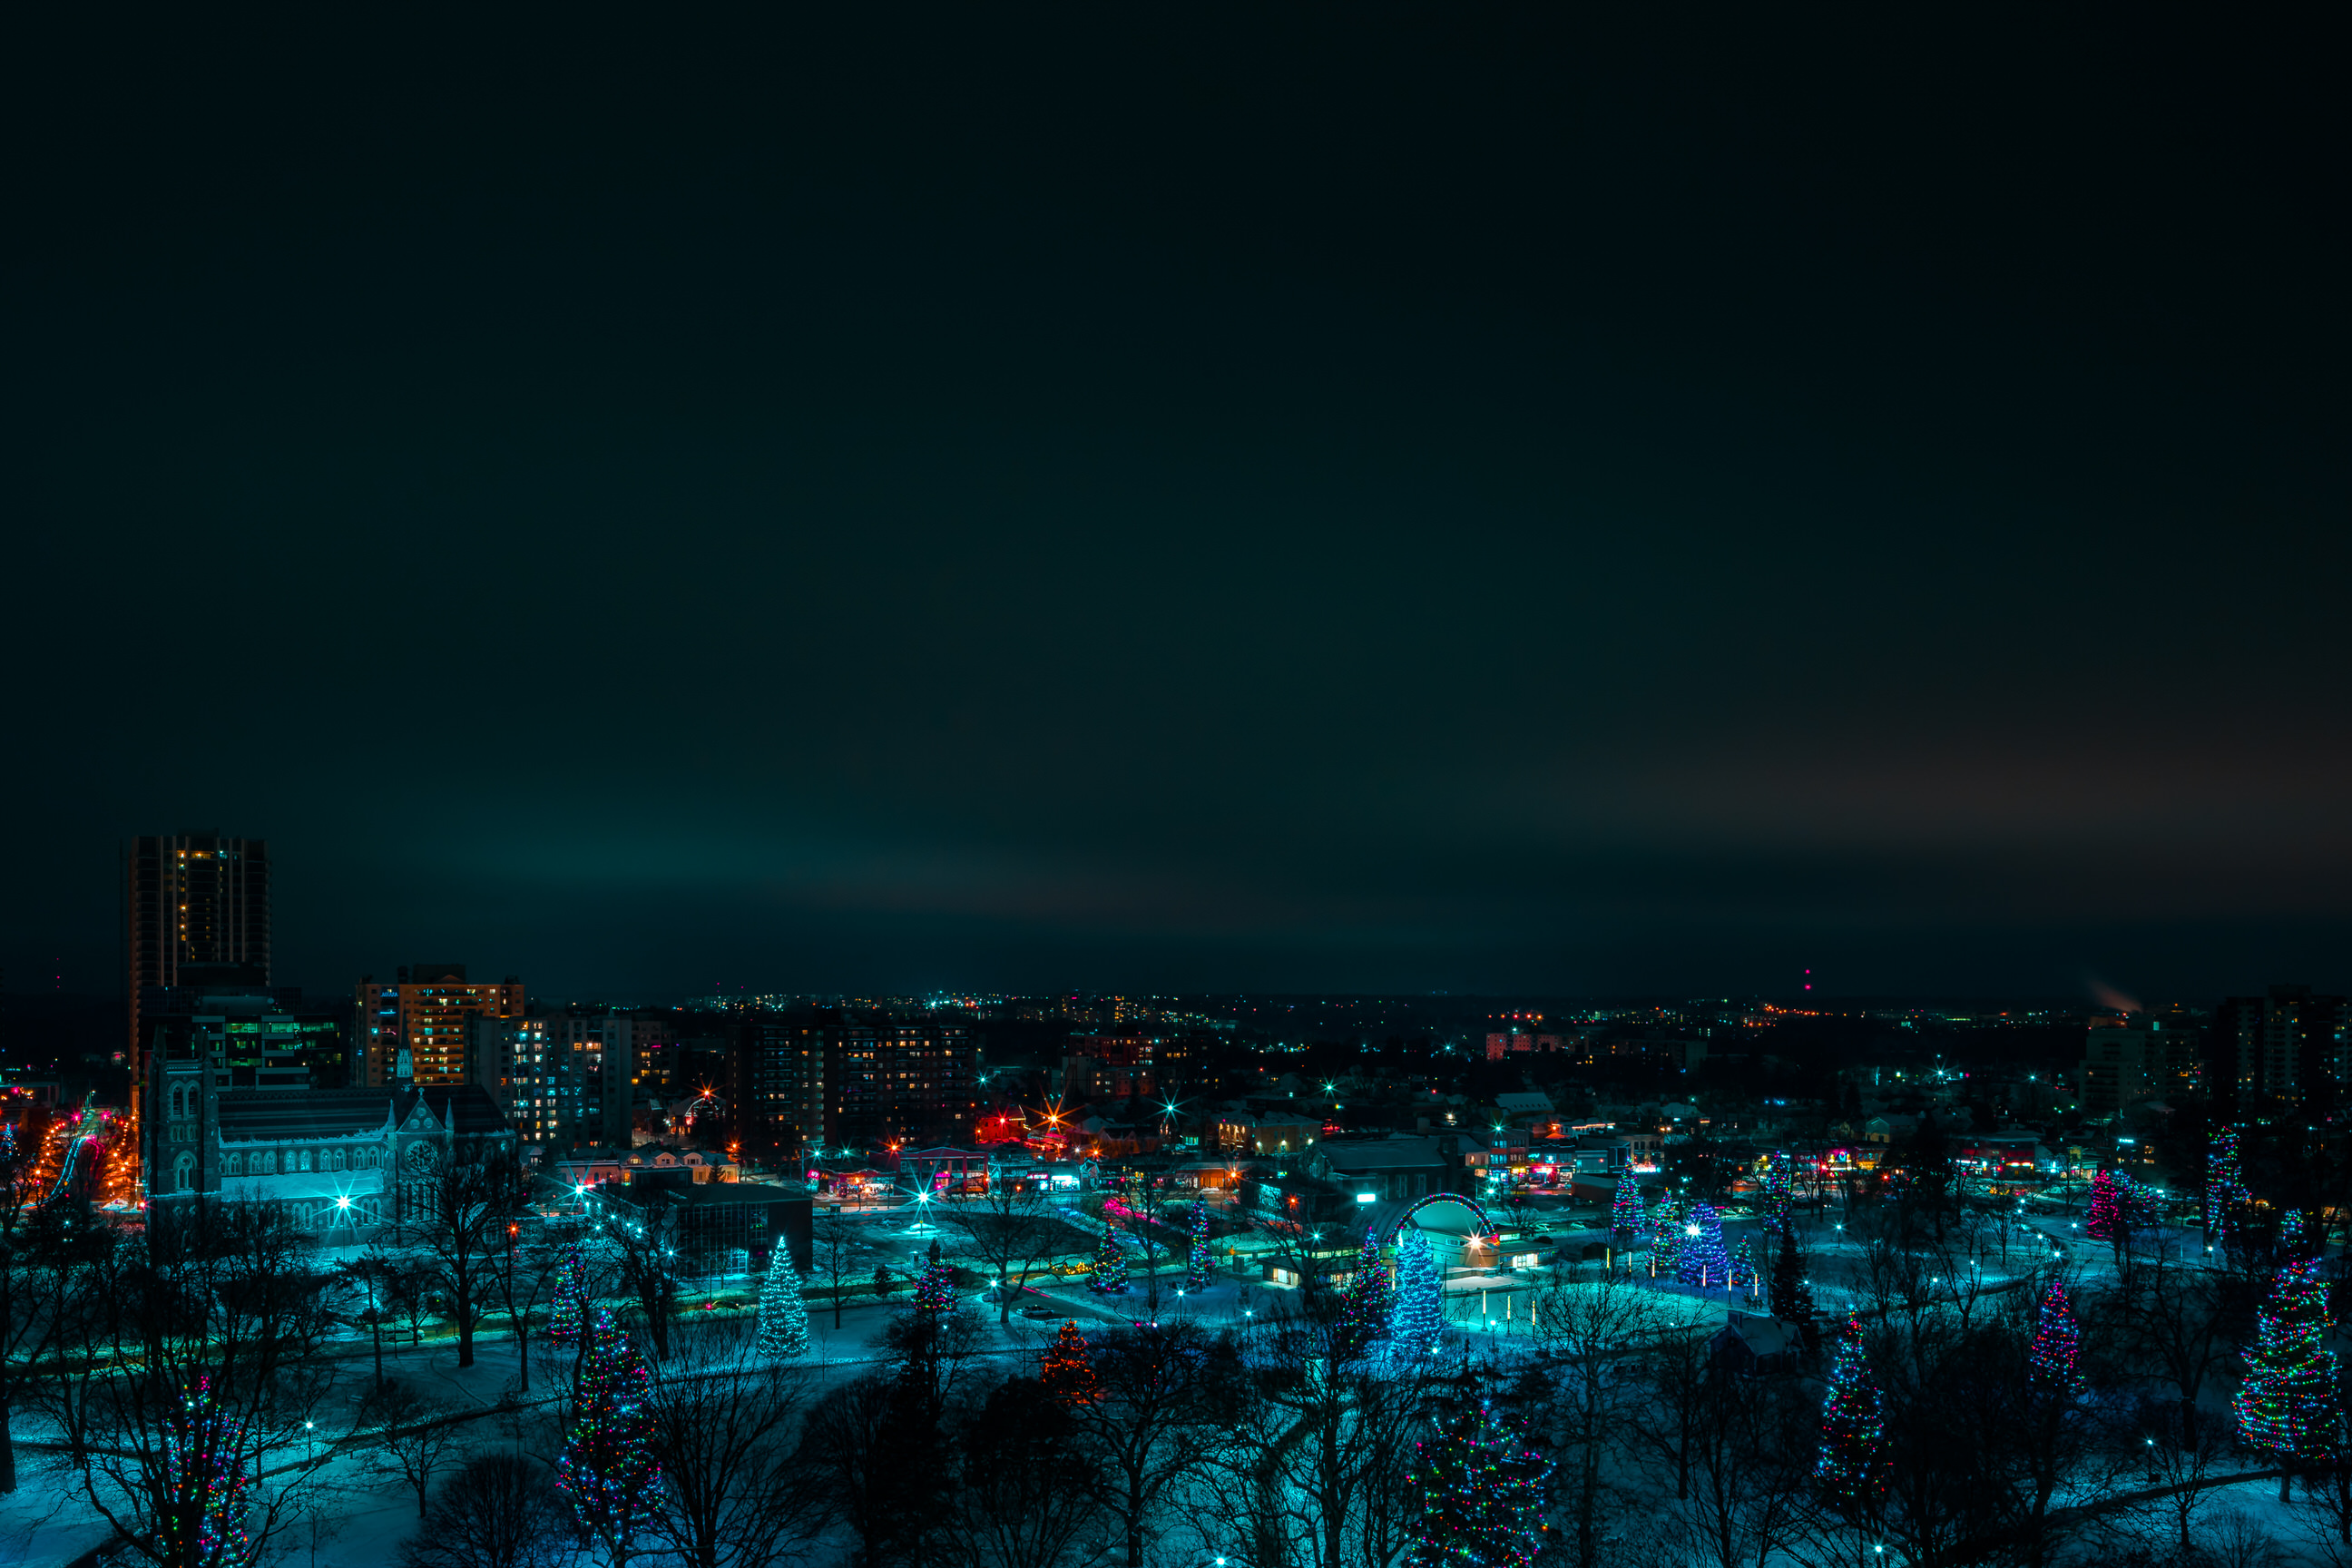 View of Victoria Park Christmas lights from City Hall London Ontario